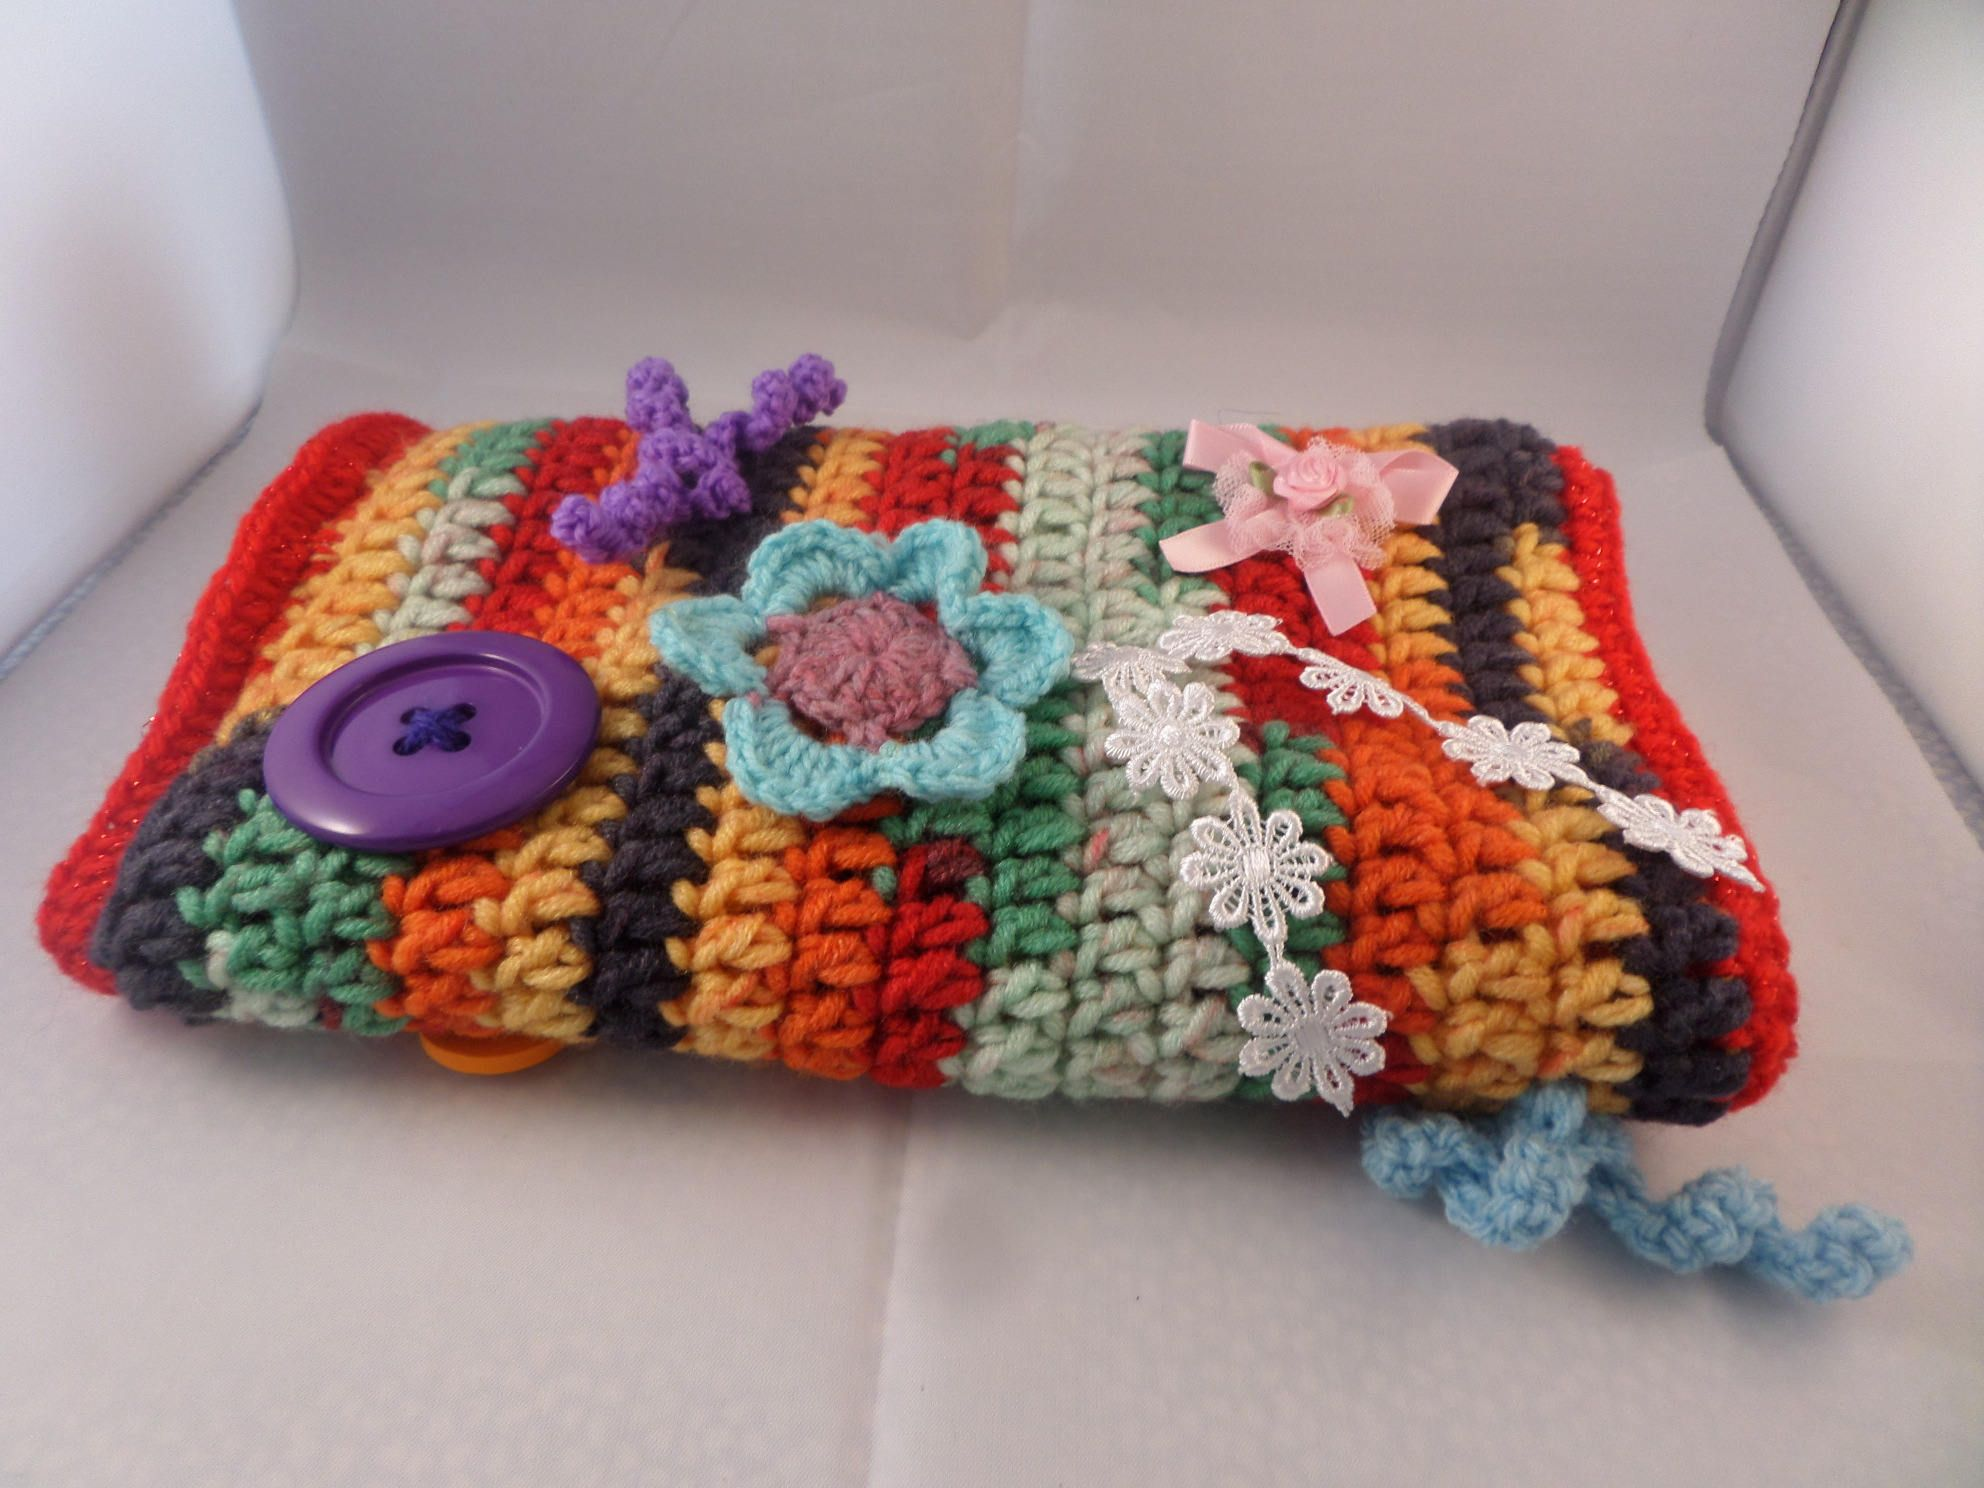 Twiddle muff, Alzheimers patients, care home gift, dementia patients ...